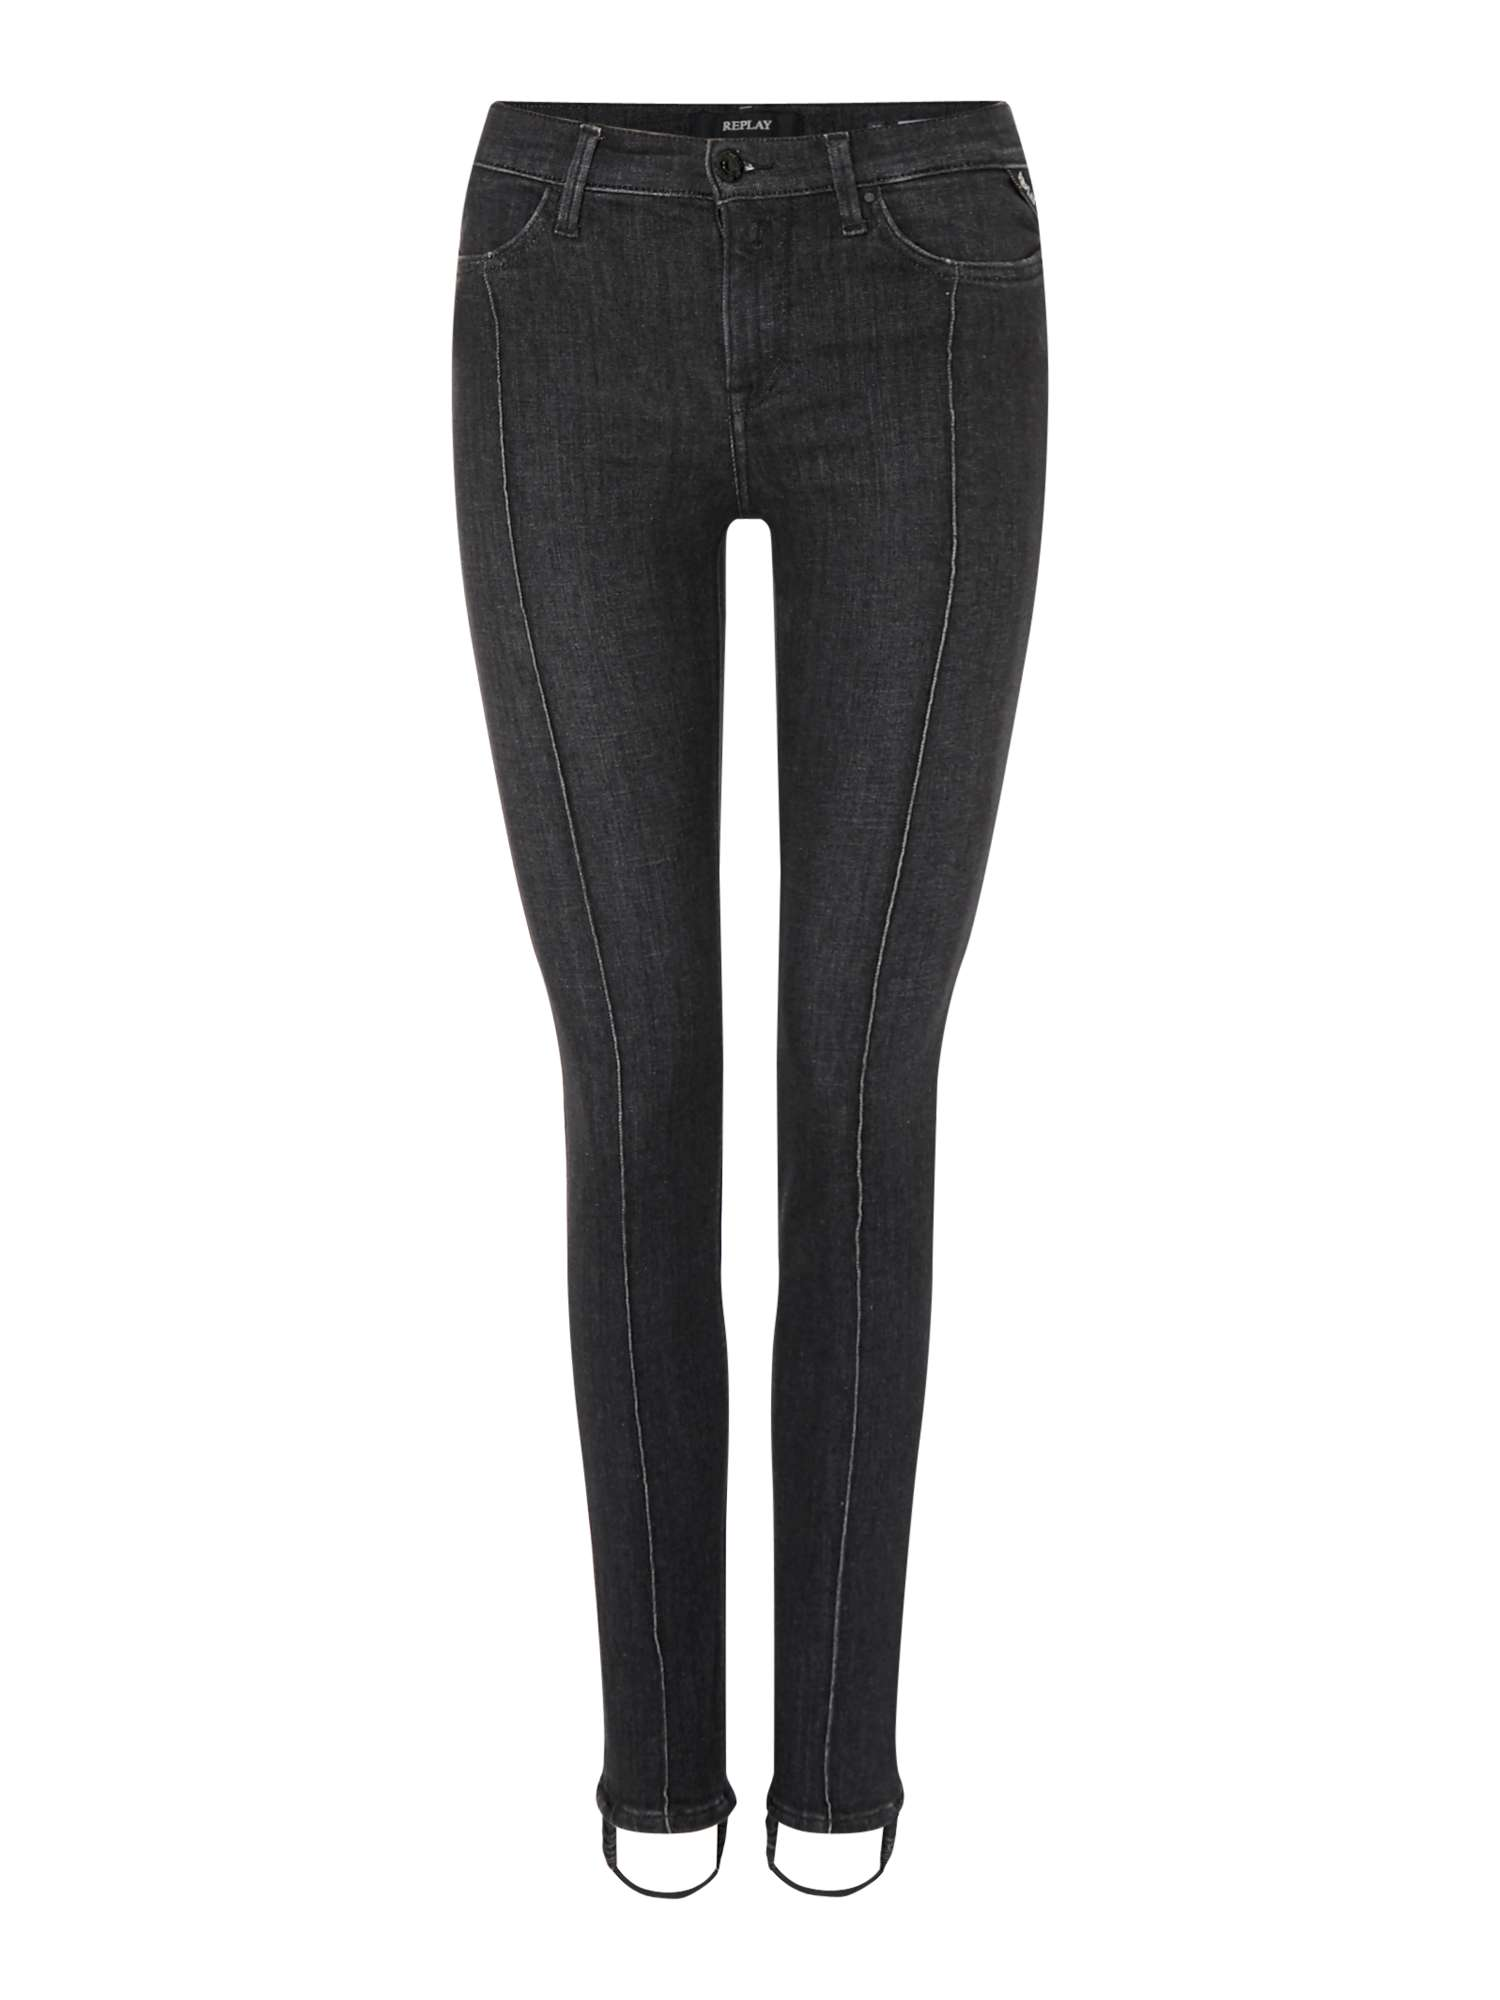 Joi Joi Skinny Joi Super Replay Skinny Super Replay Replay Jeans Jeans Super Ow6x5qt5